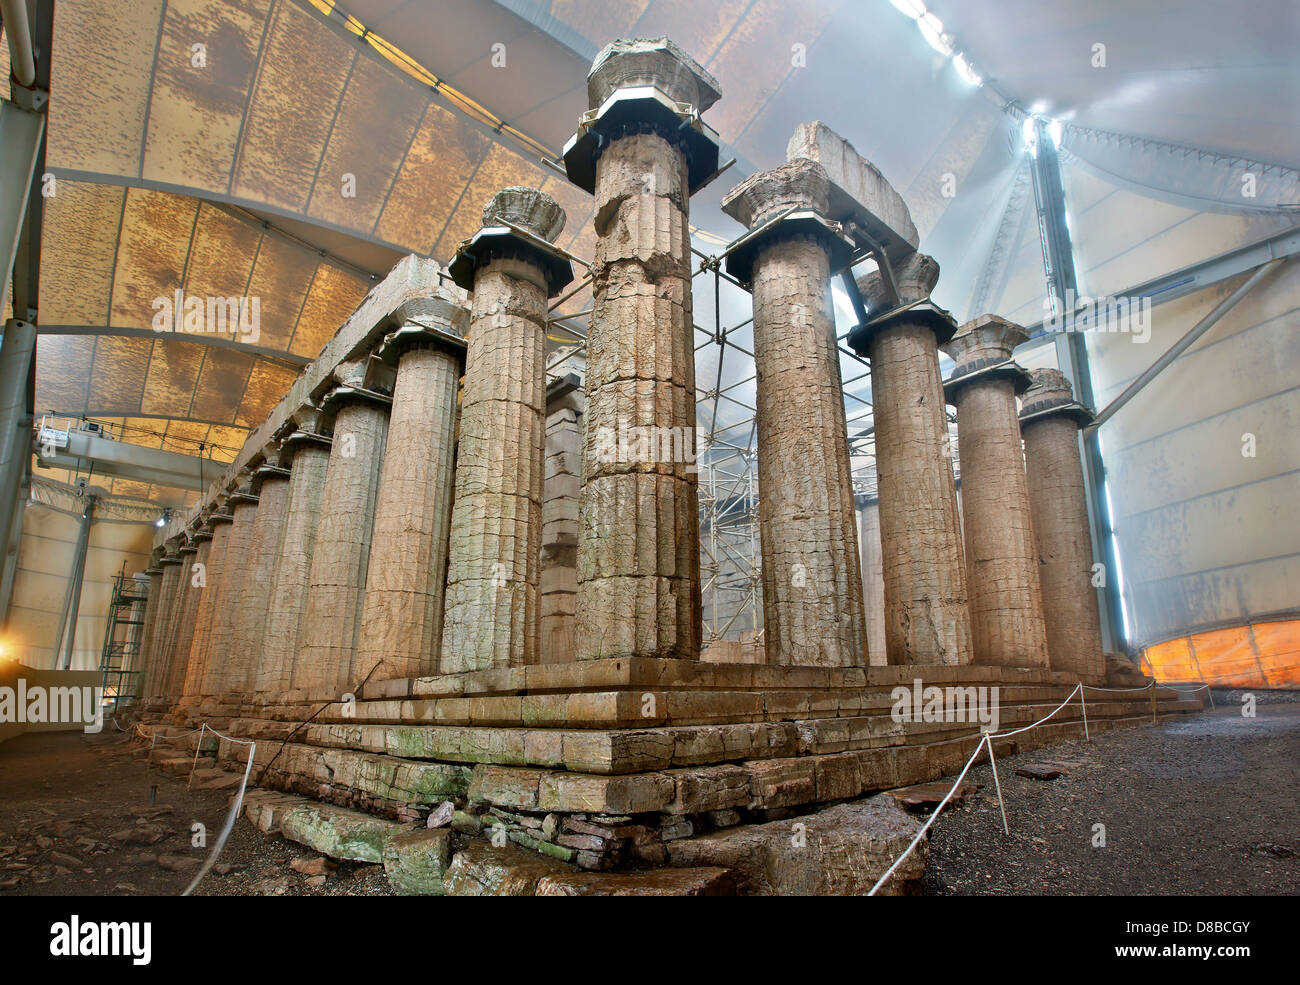 The temple of Apollo Epicurius covered by a protective tent (and fog) at Vasses, Peloponnese, Greece Stock Photo